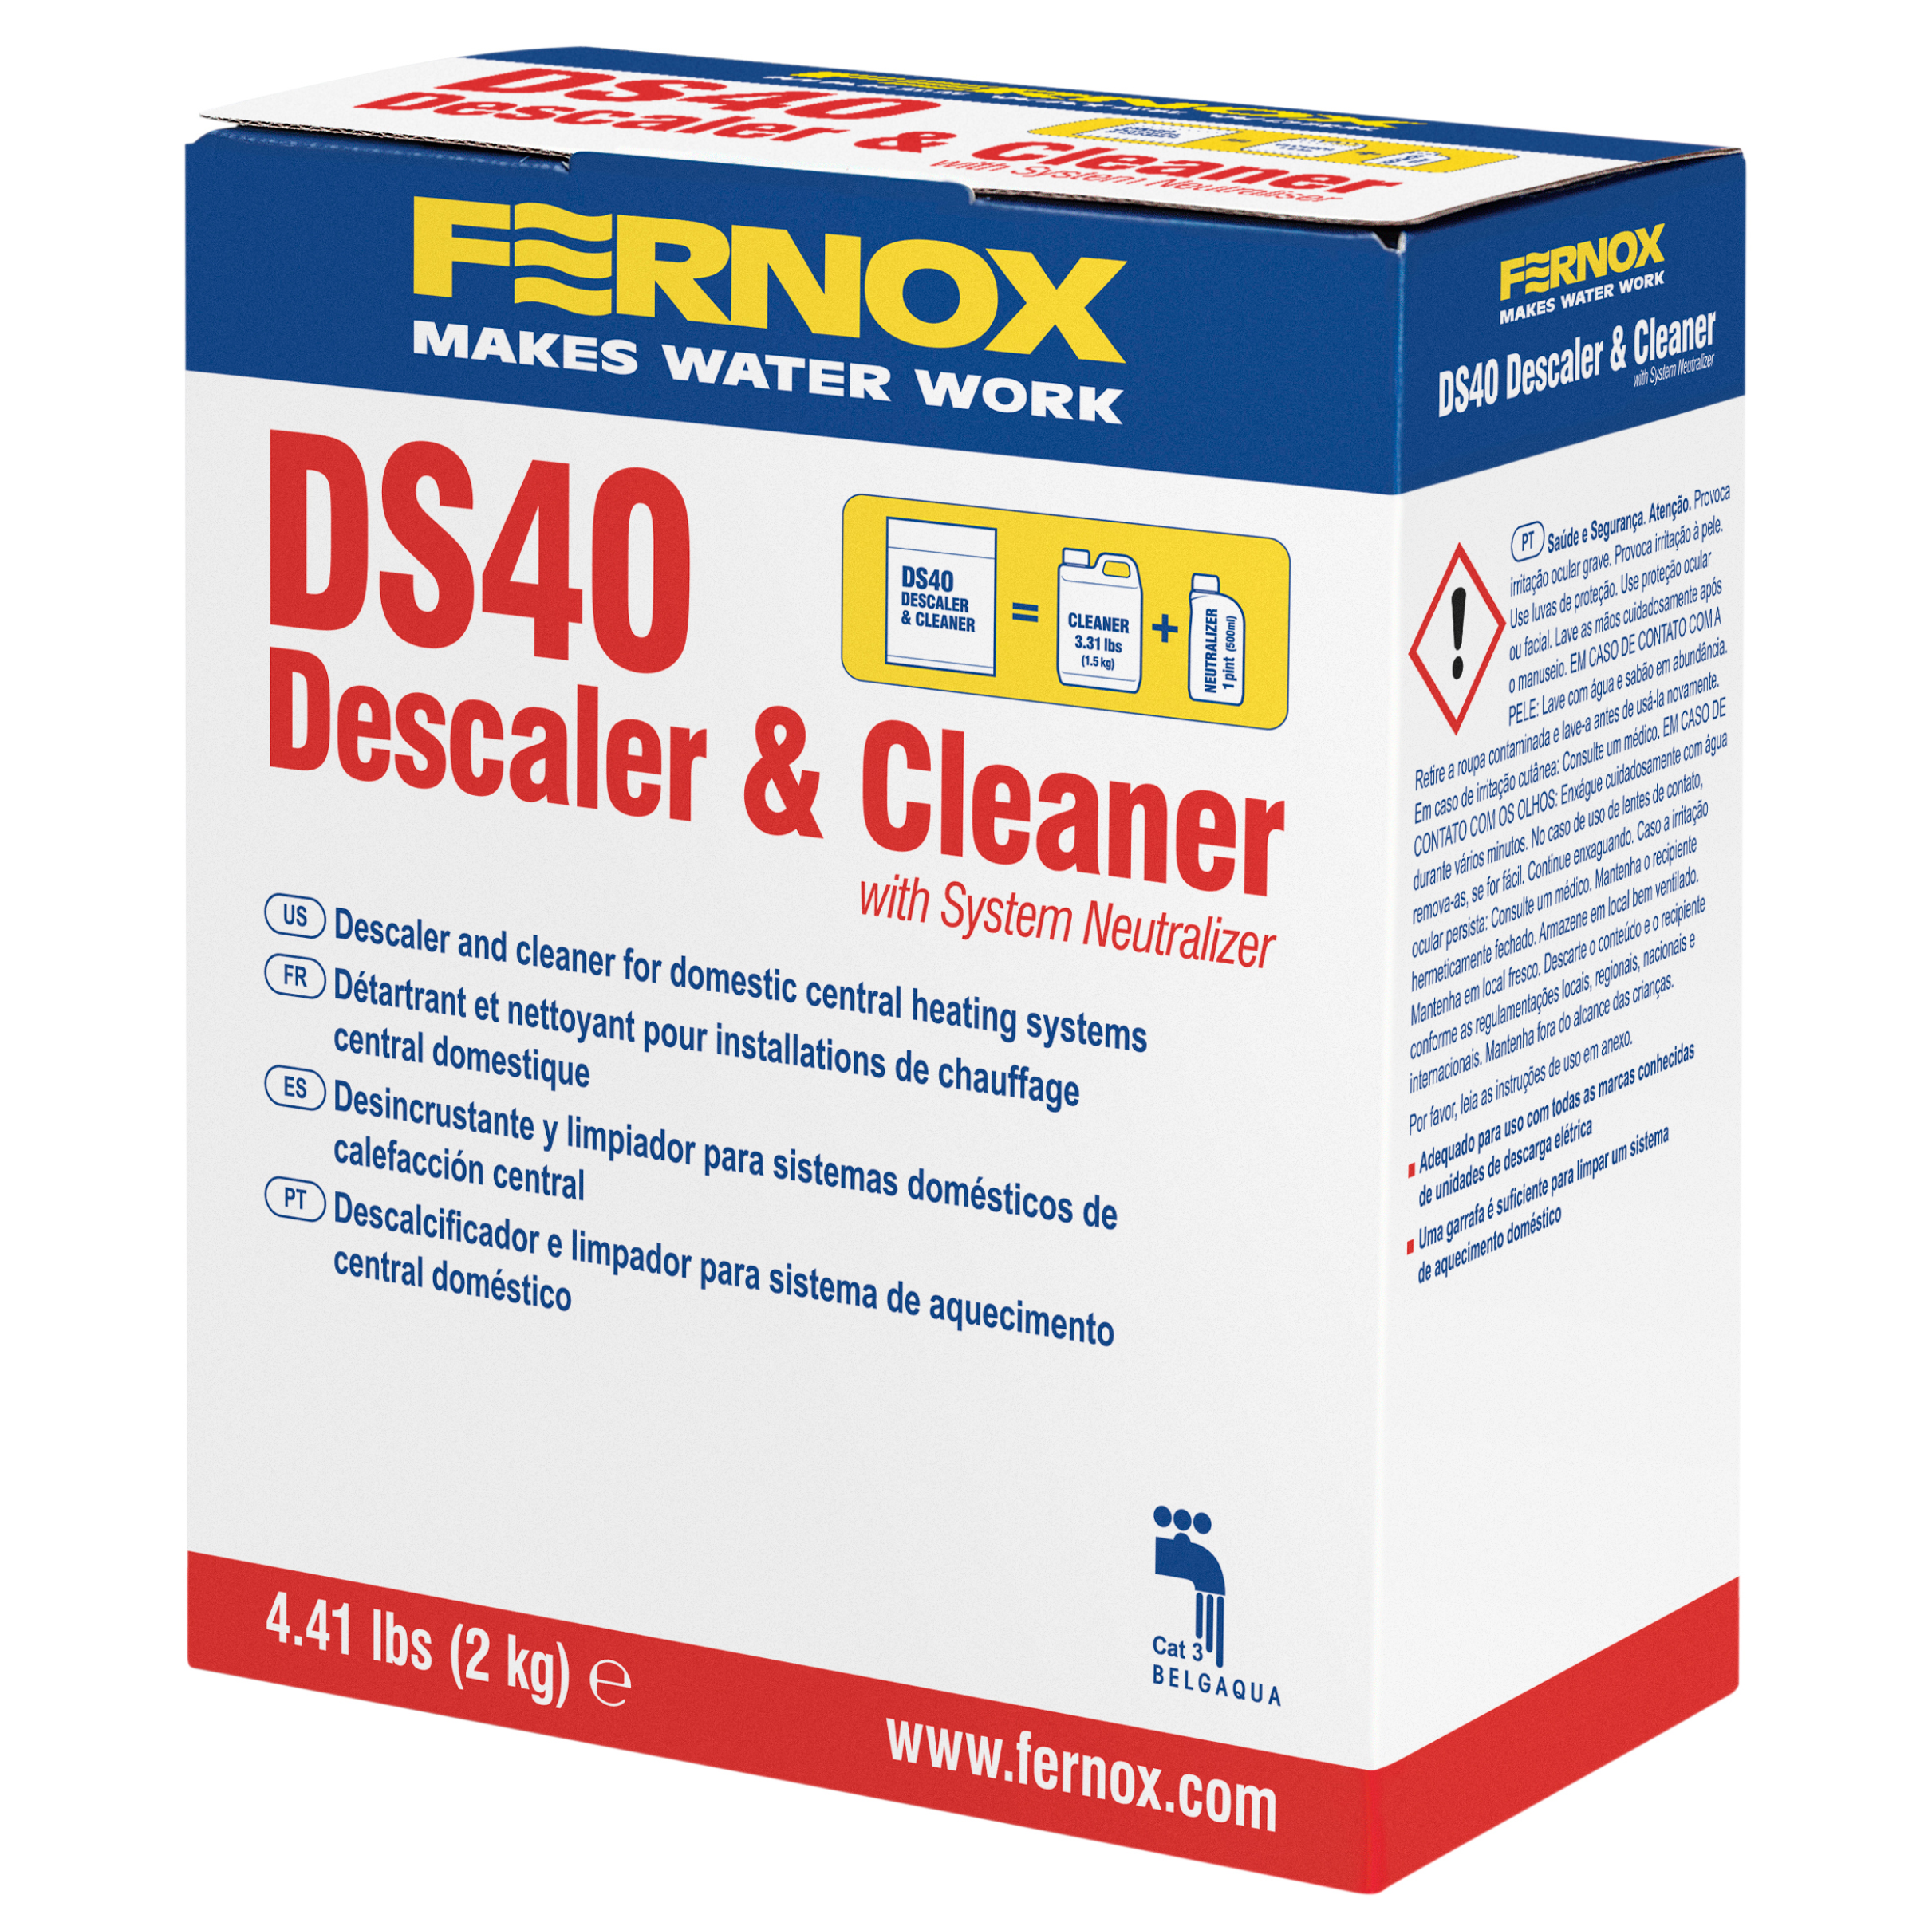 DS40 System Cleaner is a fast-acting, citric based acid cleaner designed to remove limescale, black sludge & other system contaminants.